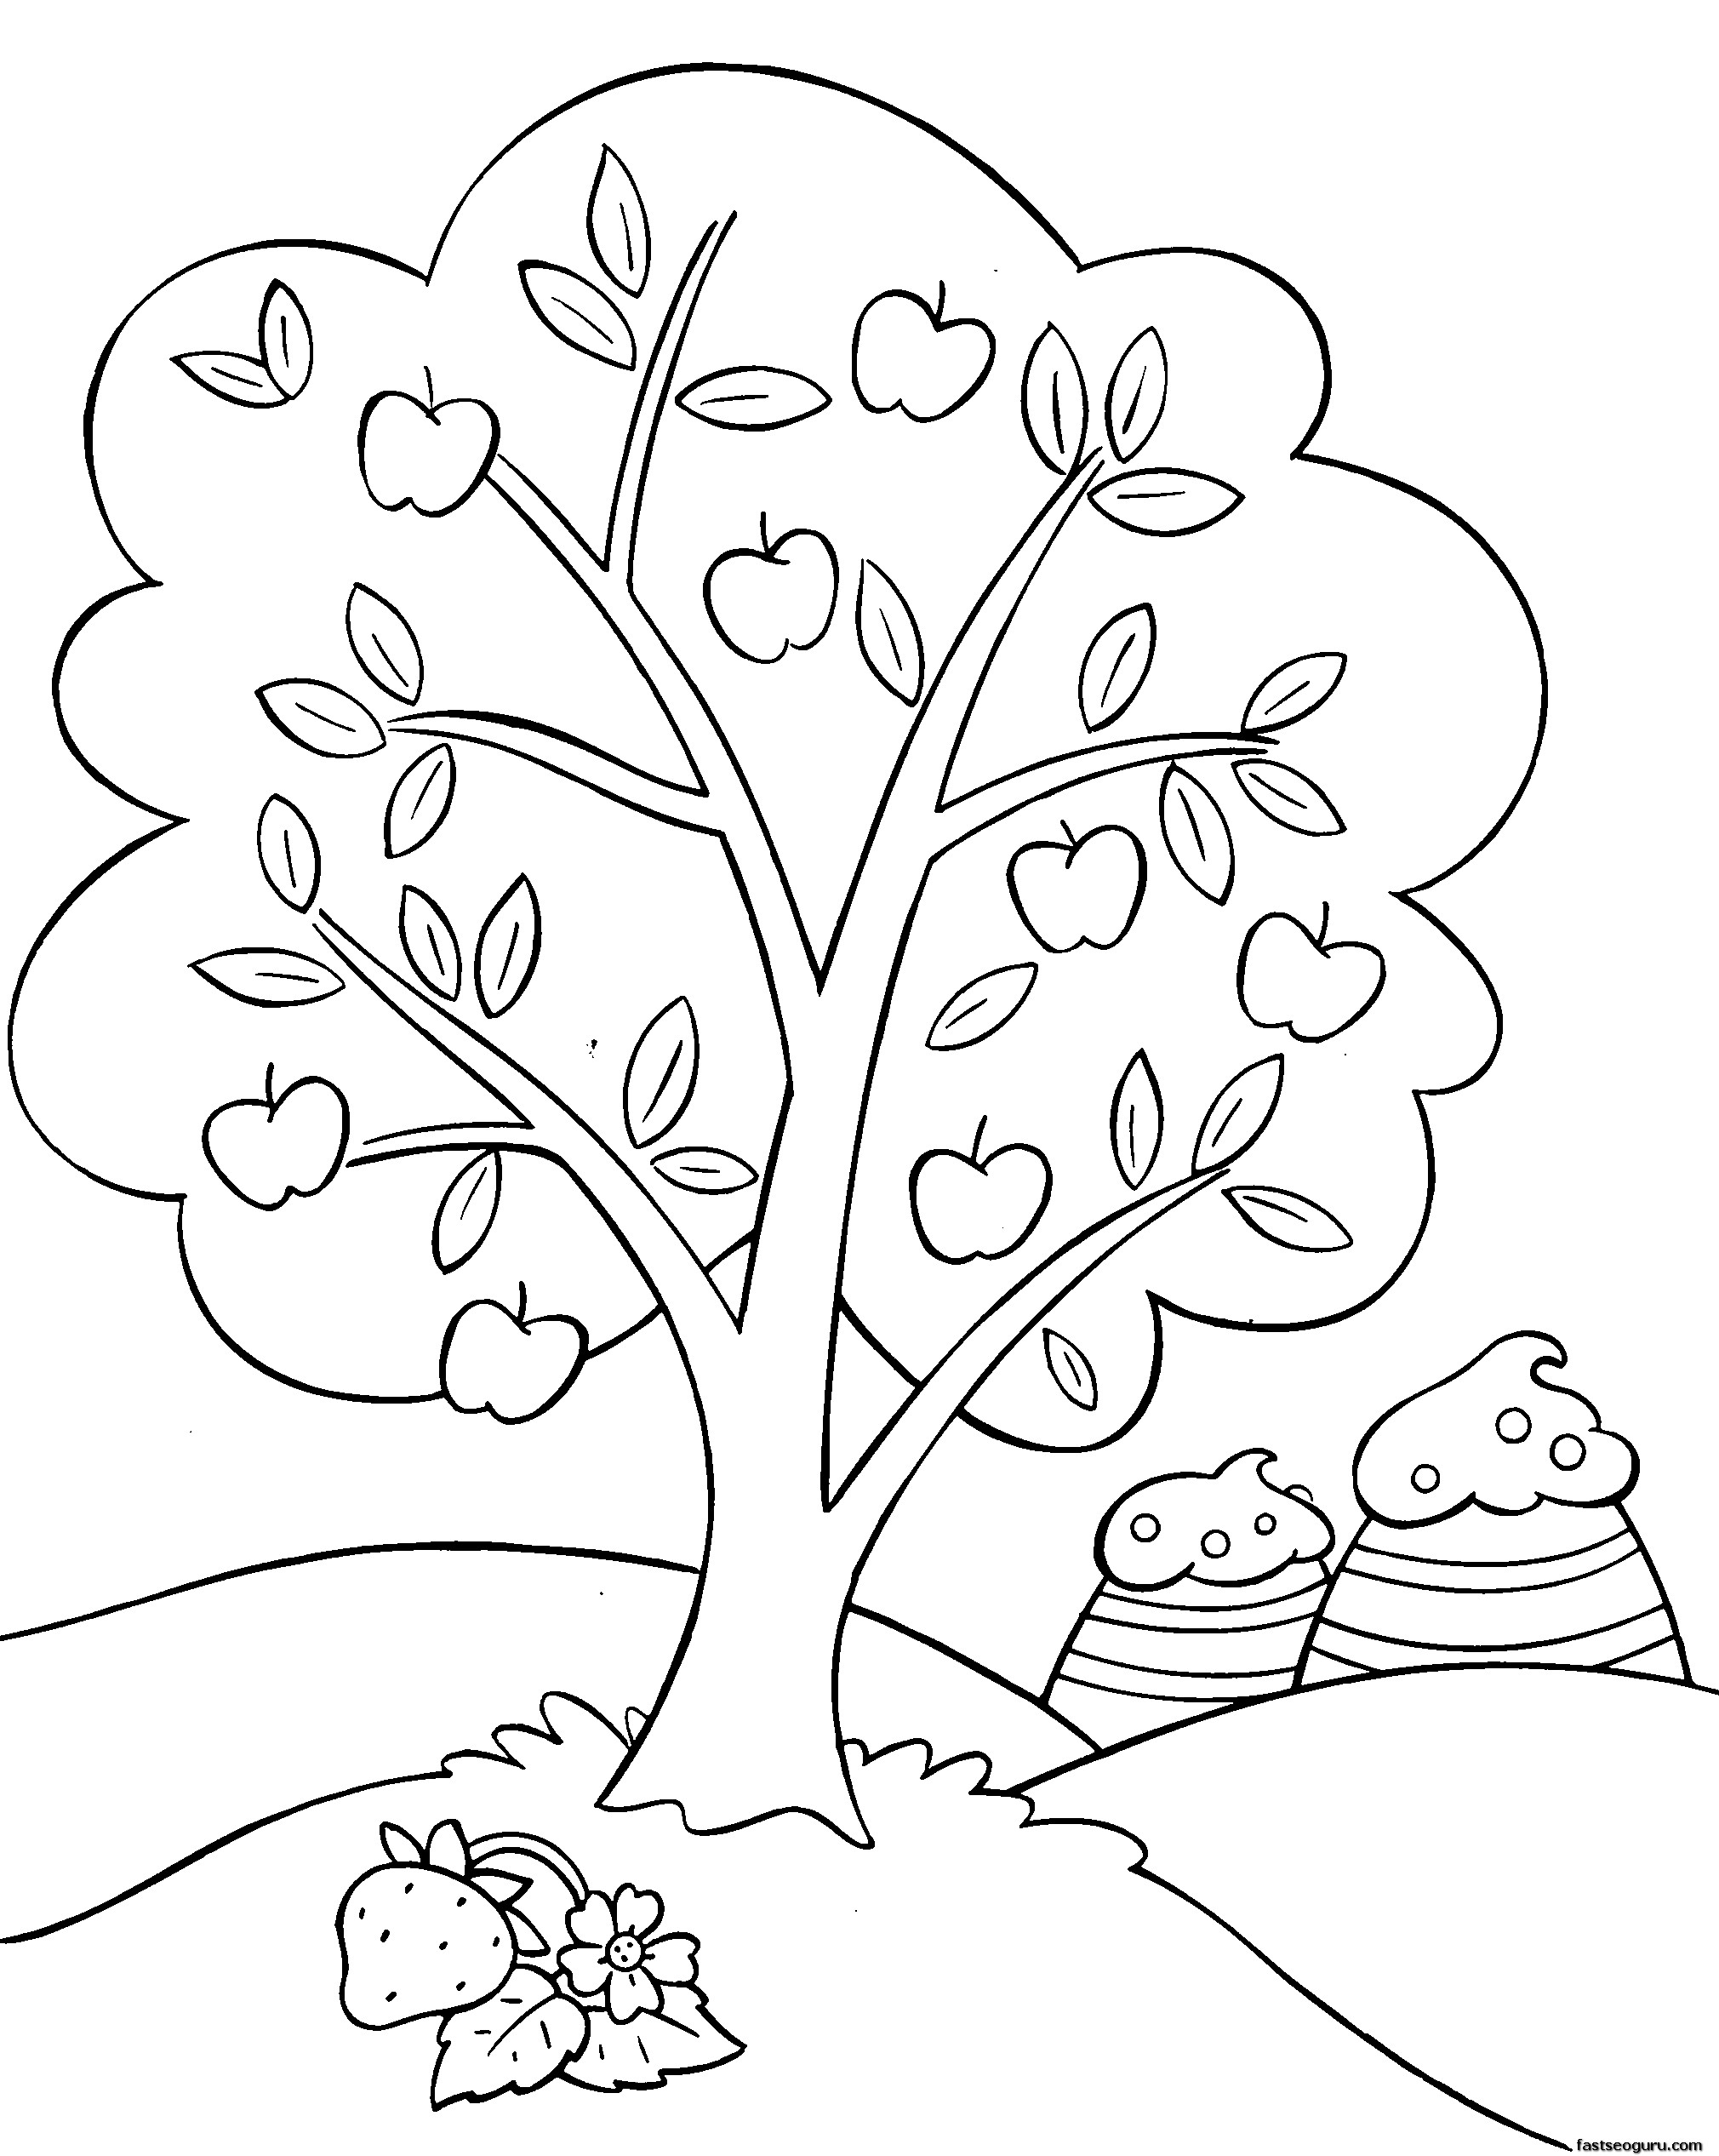 strawberry girl coloring pages - printable cartoon strawberry shortcake coloring pages for